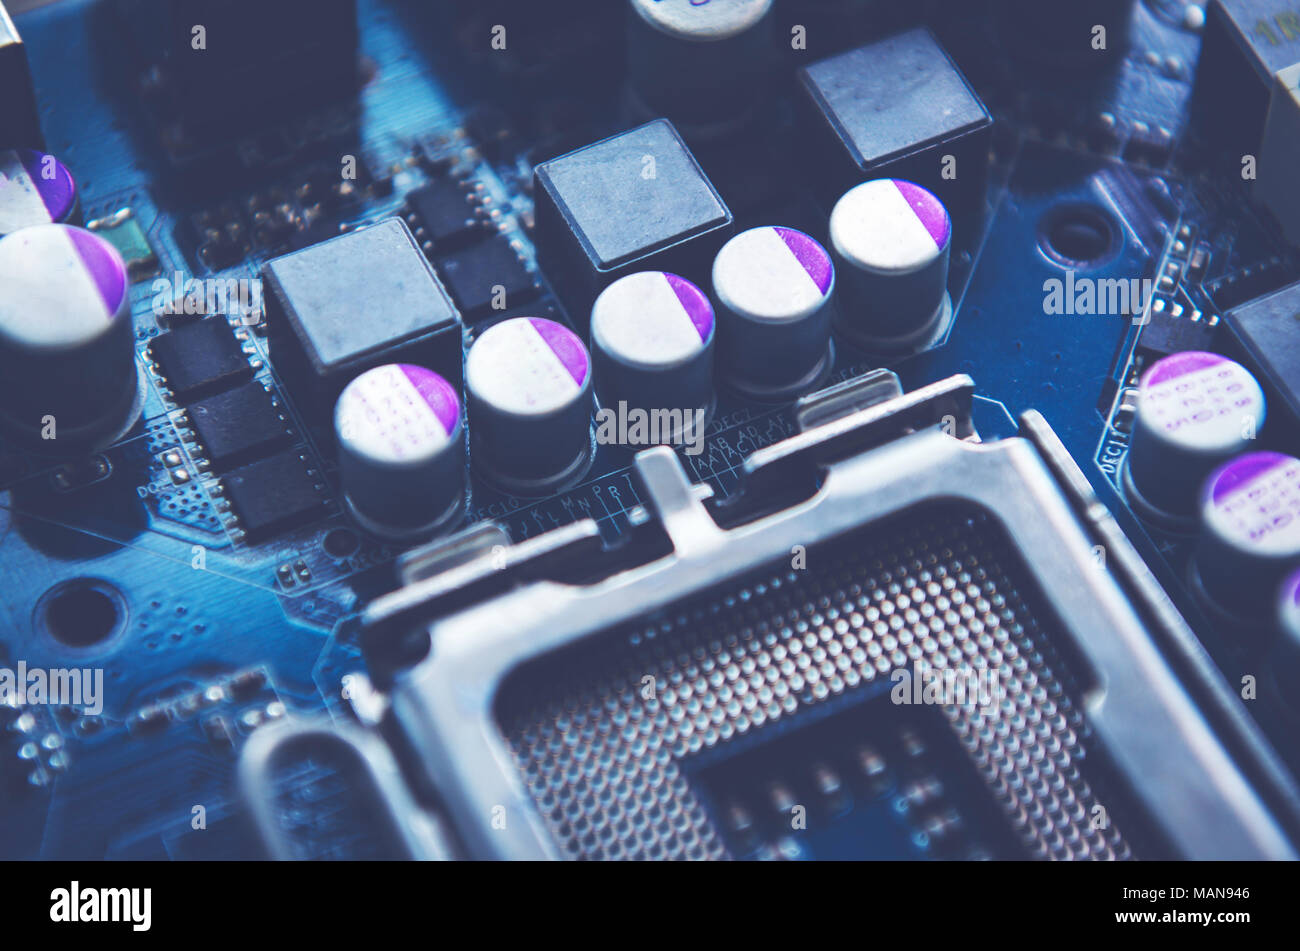 Creative Abstract Electronic Industry Business Technology Concept Pics Photos Pcb Circuits Computers Components Macro View Of The Group Computer Pc Motherboard Or Mainboard Circuit Board W